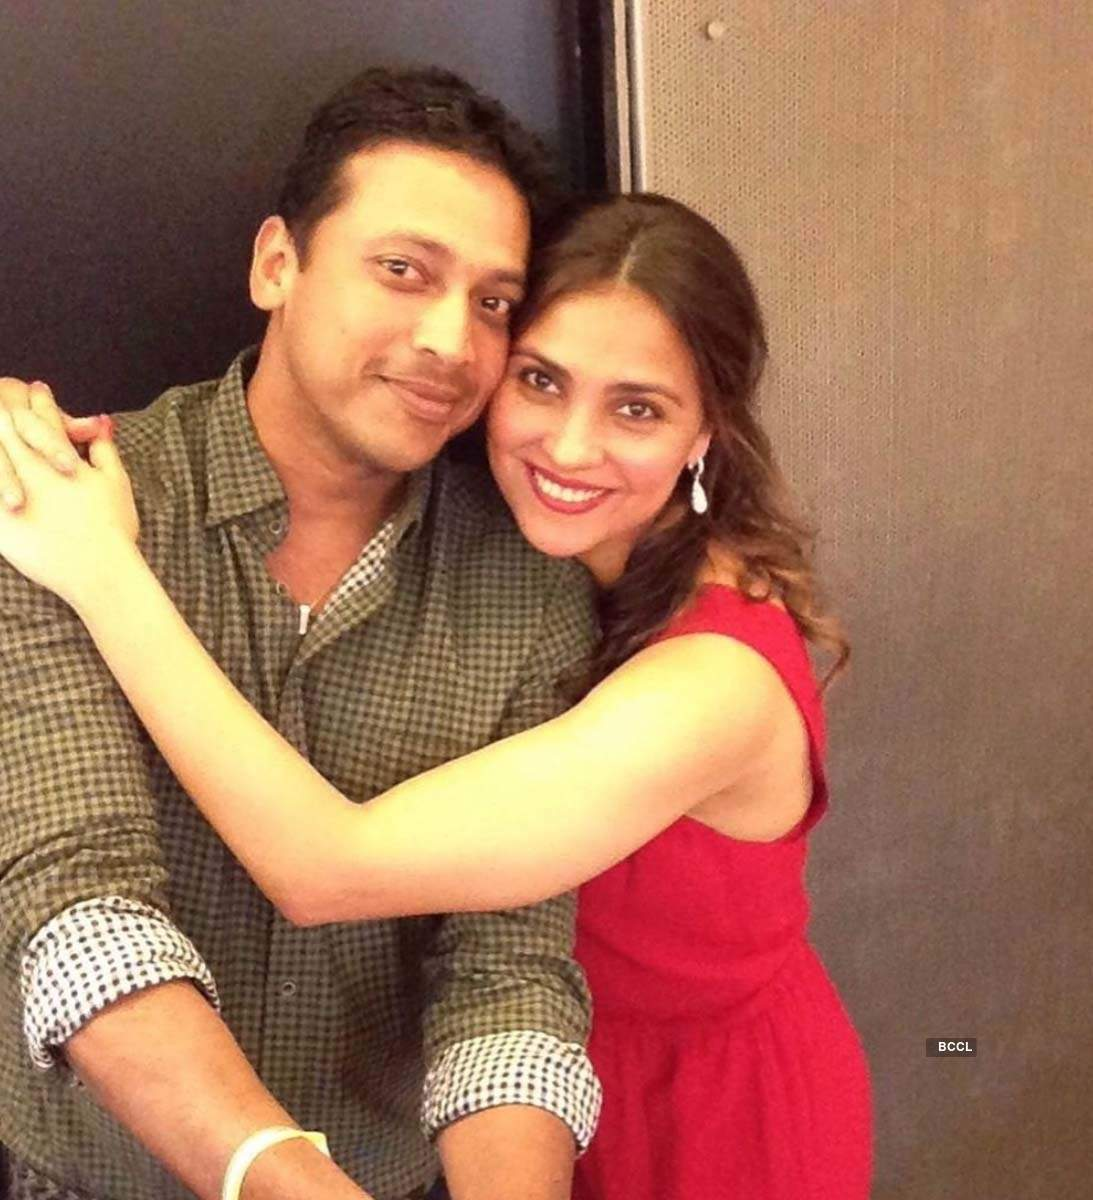 Lara Dutta and tennis star Mahesh Bhupathi give us major couple goals